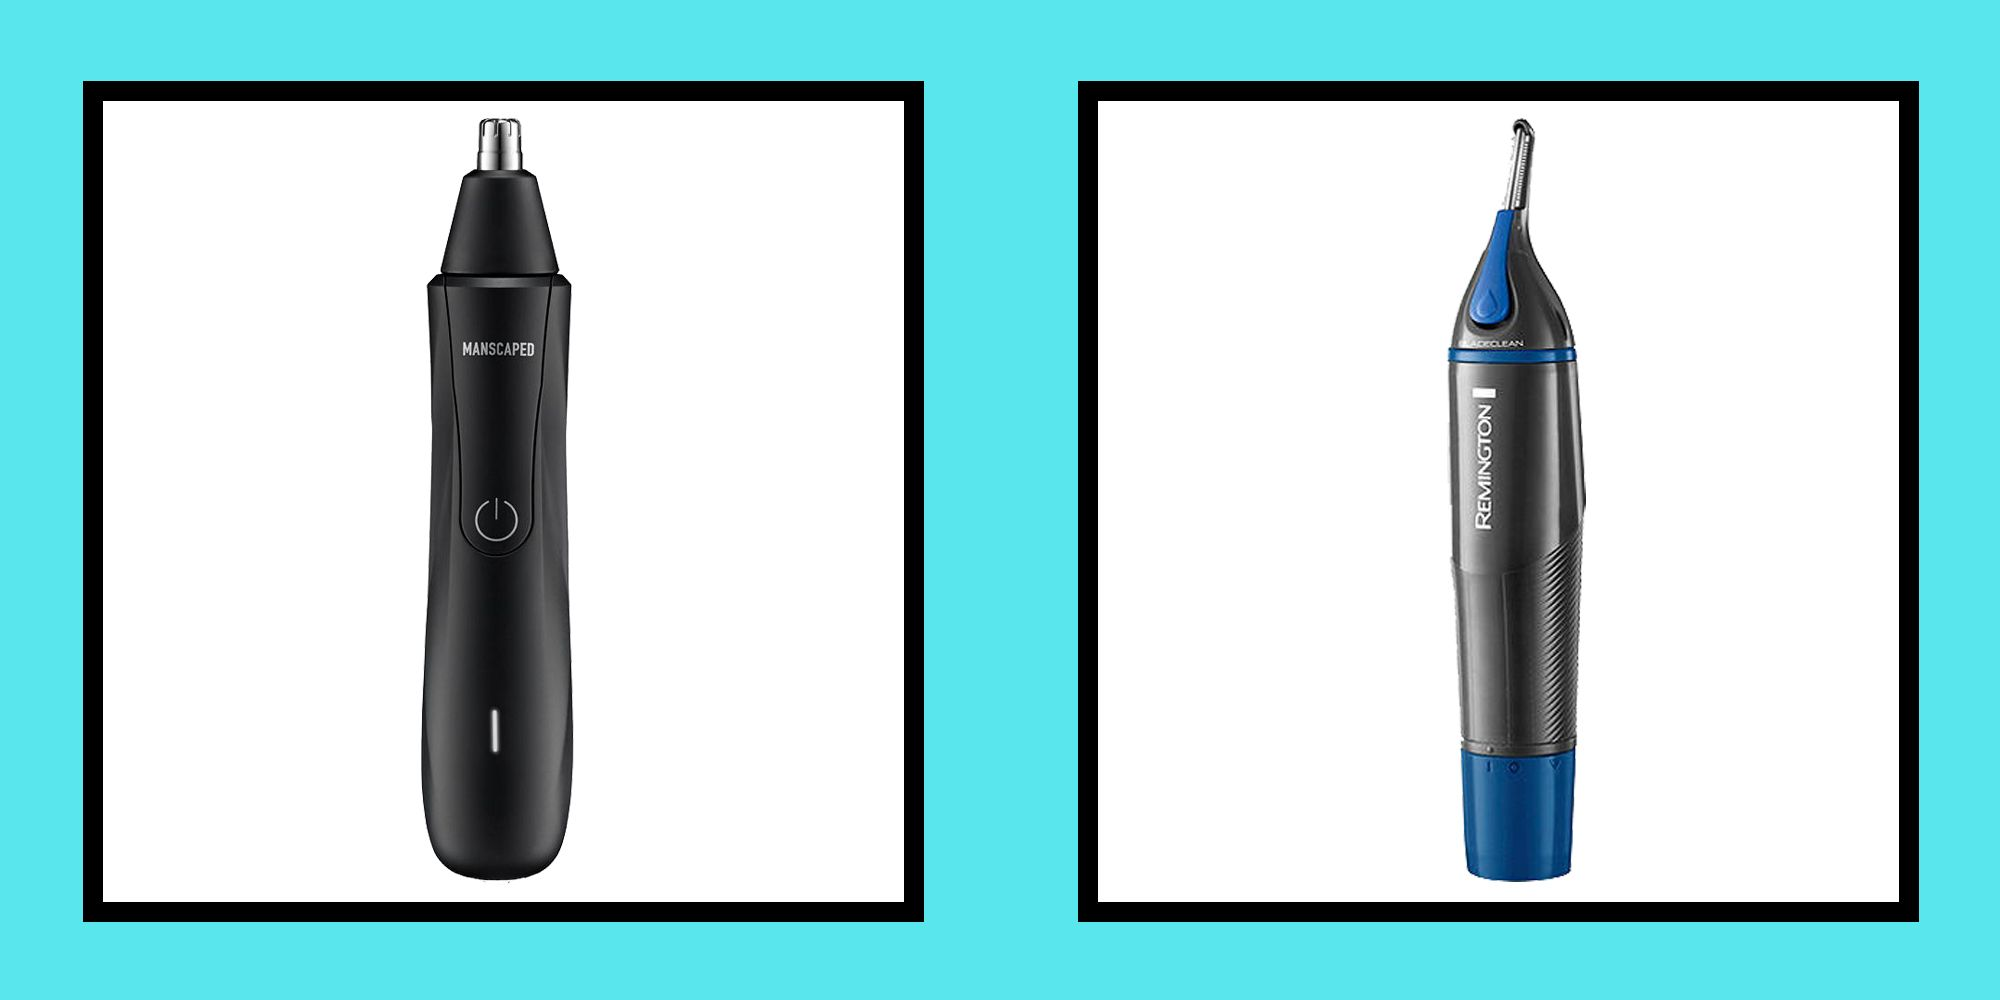 9 best nose hair trimmers for neatening up those nostrils ASAP